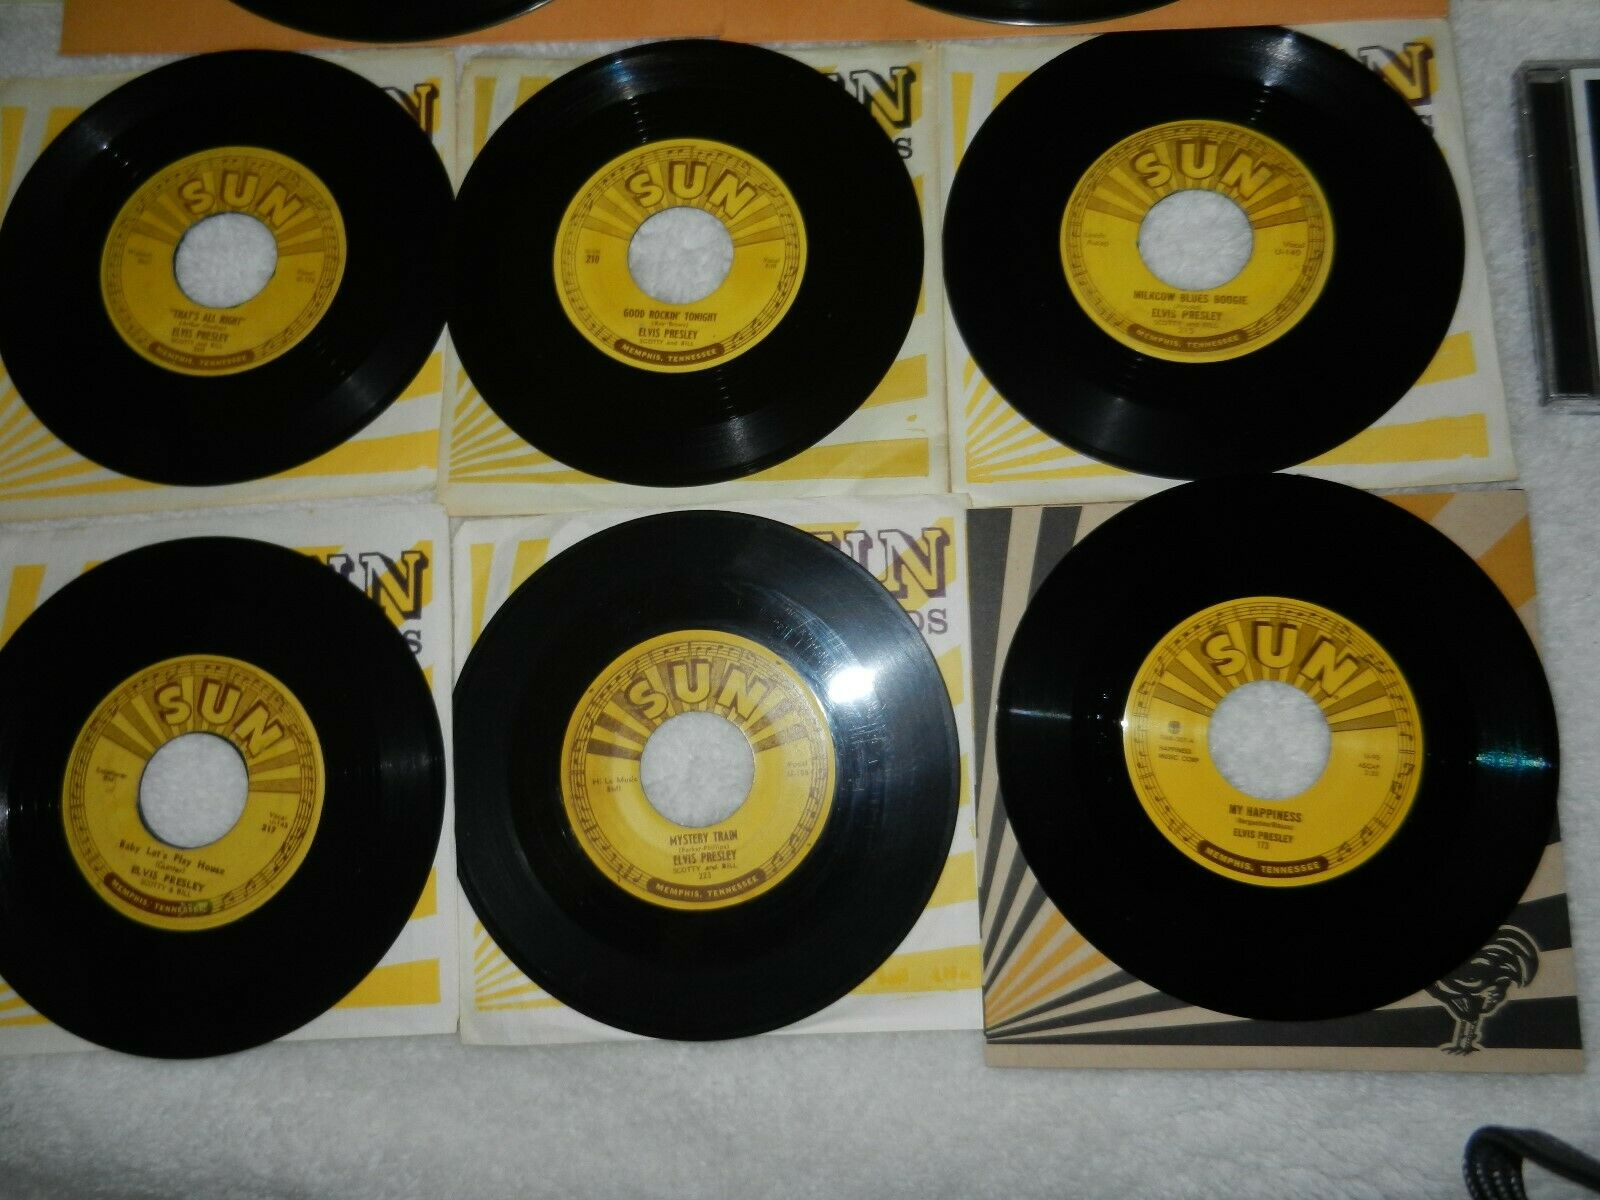 ELVIS PRESLEY ORIGINAL1950'S 45'S, 78'S AND MEMPHIS RECORDING SERVICE VOLUMES